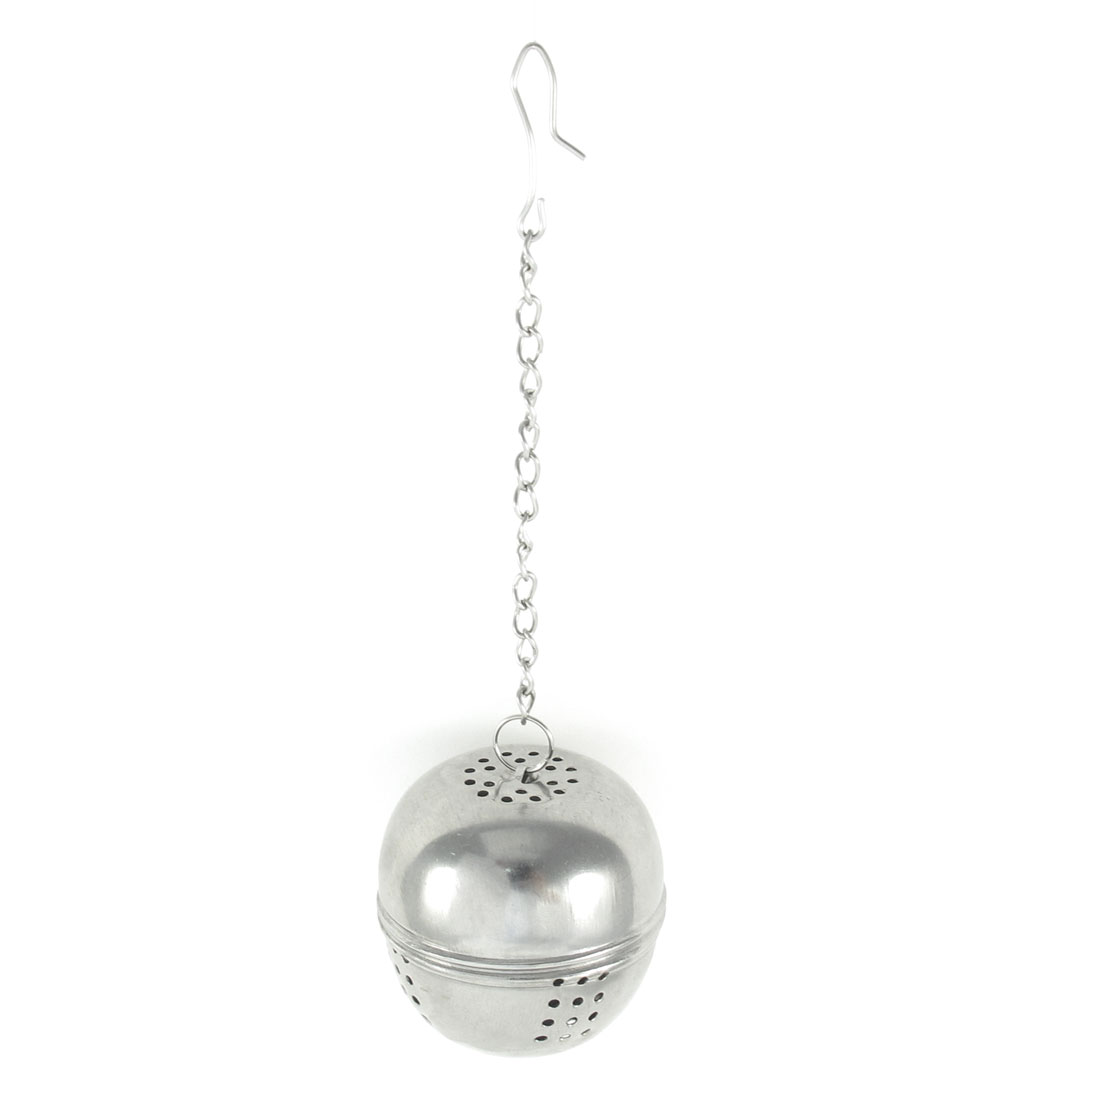 Stainless Steel Locking Chain 4cm Dia Ball Shaped Tea Infuser Strainer